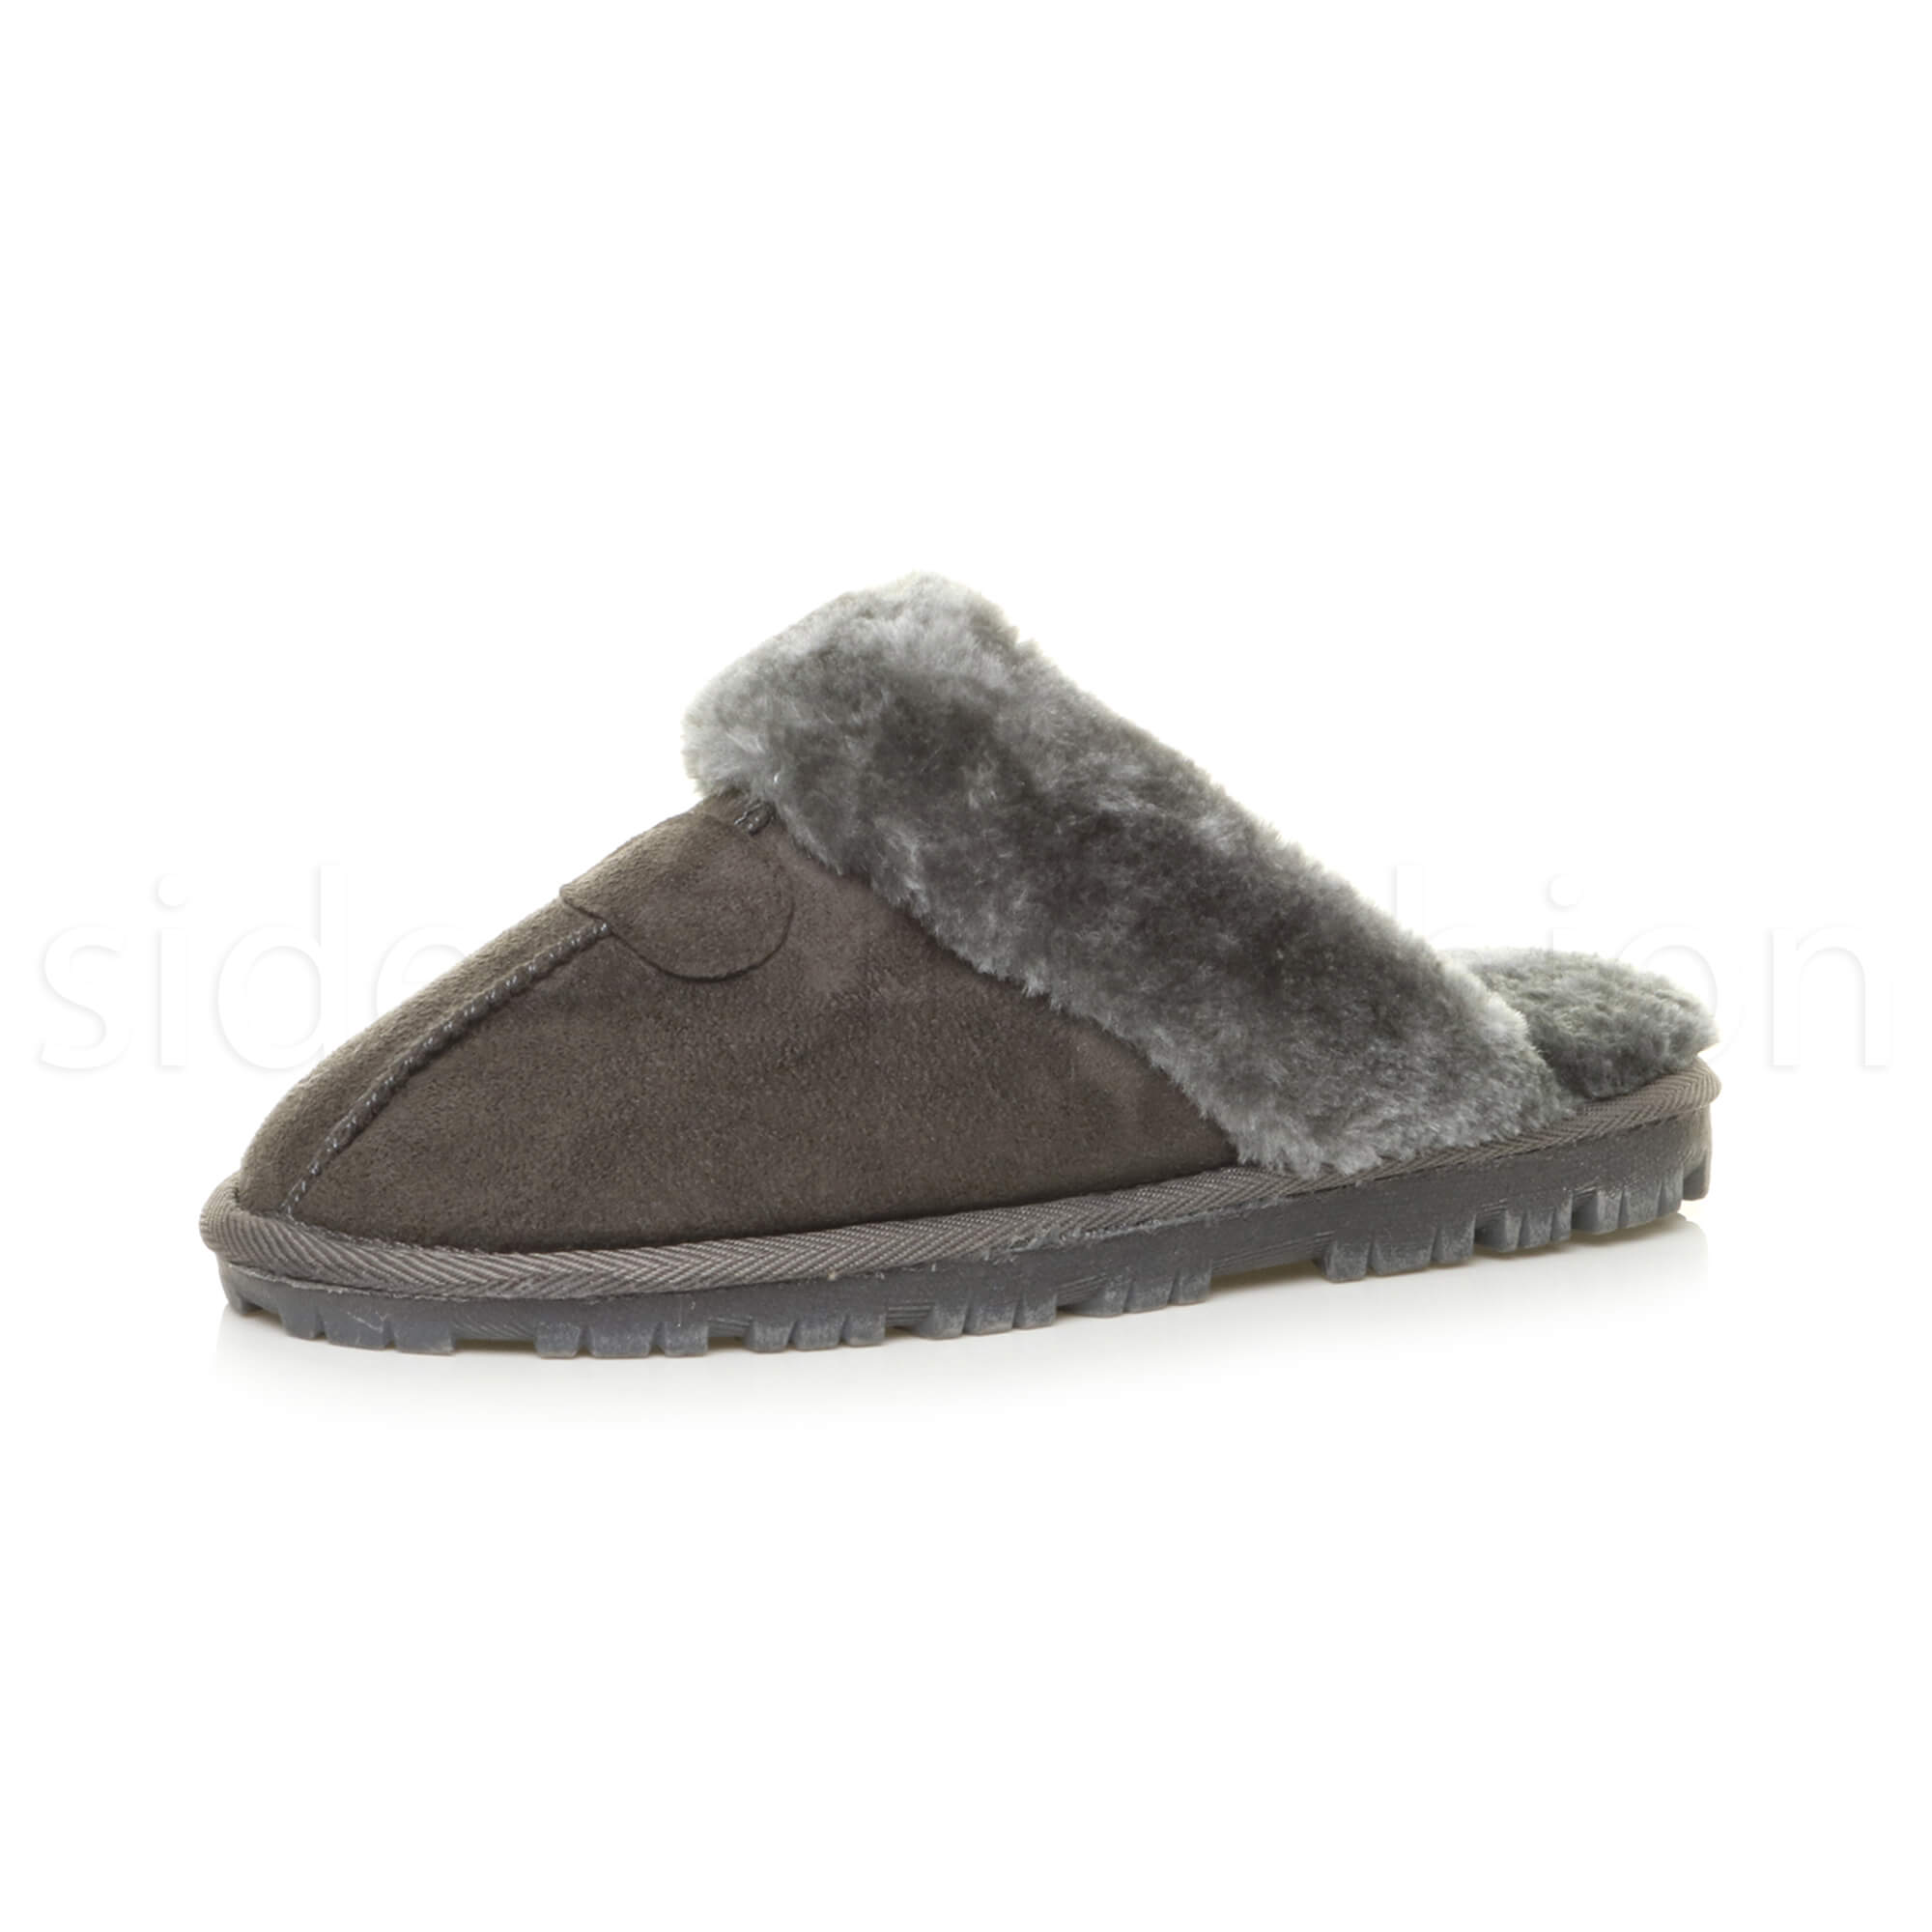 e0180bf71d4 Womens ladies winter fur lined luxury comfortable gift snug slippers mules  size